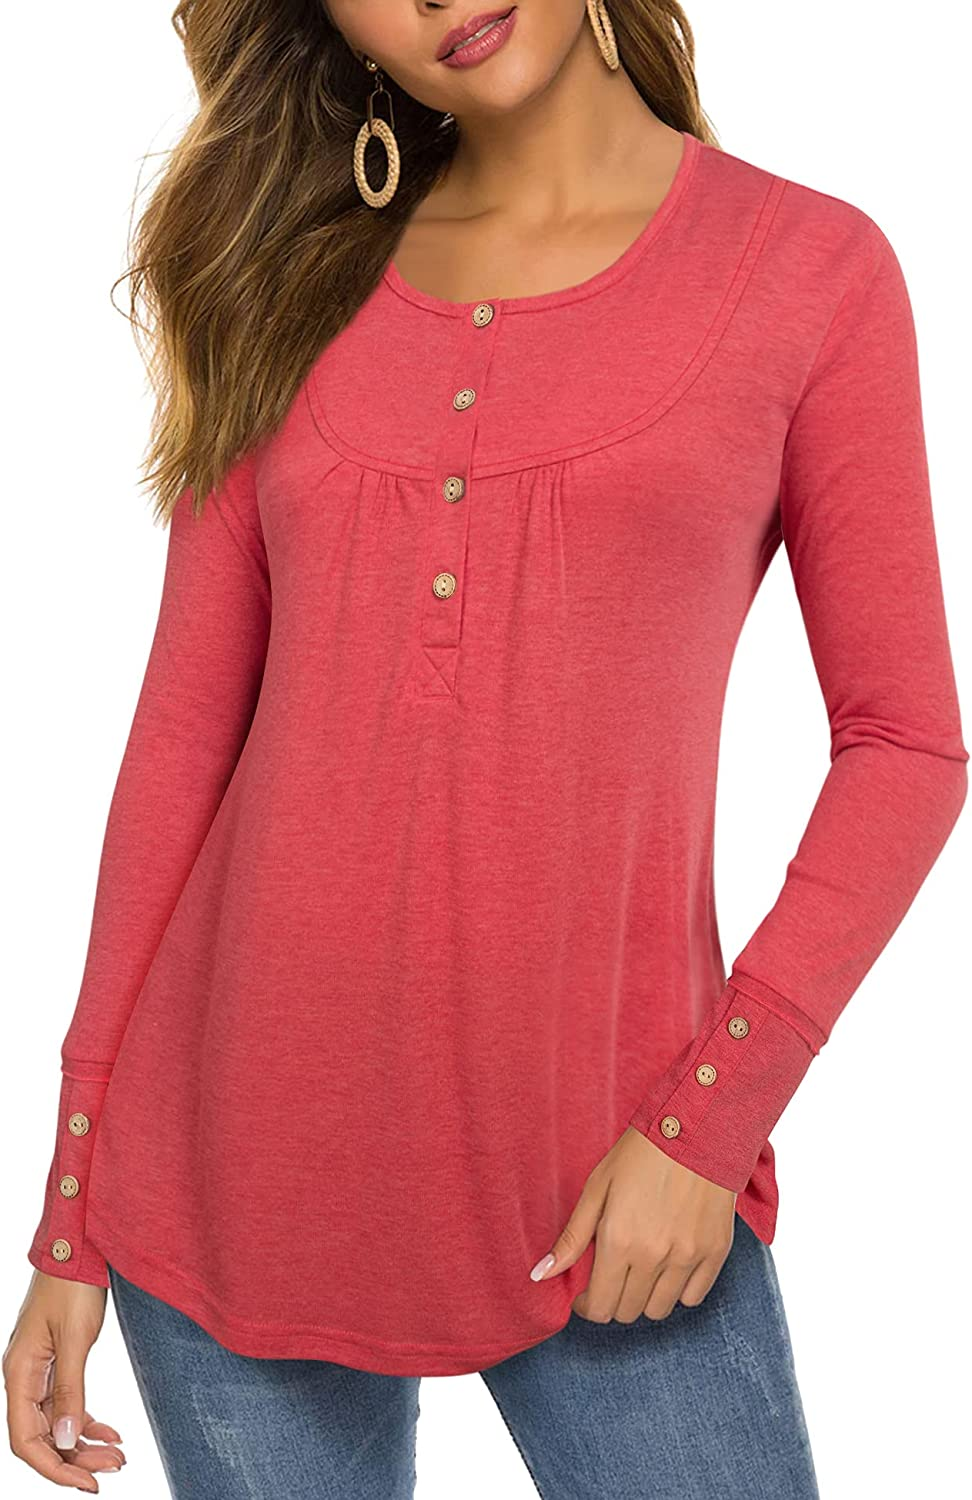 Furnex Women's Casual Long Sleeve Round Neck Tunic Shirts Pleated Blouses Tops with Buttons